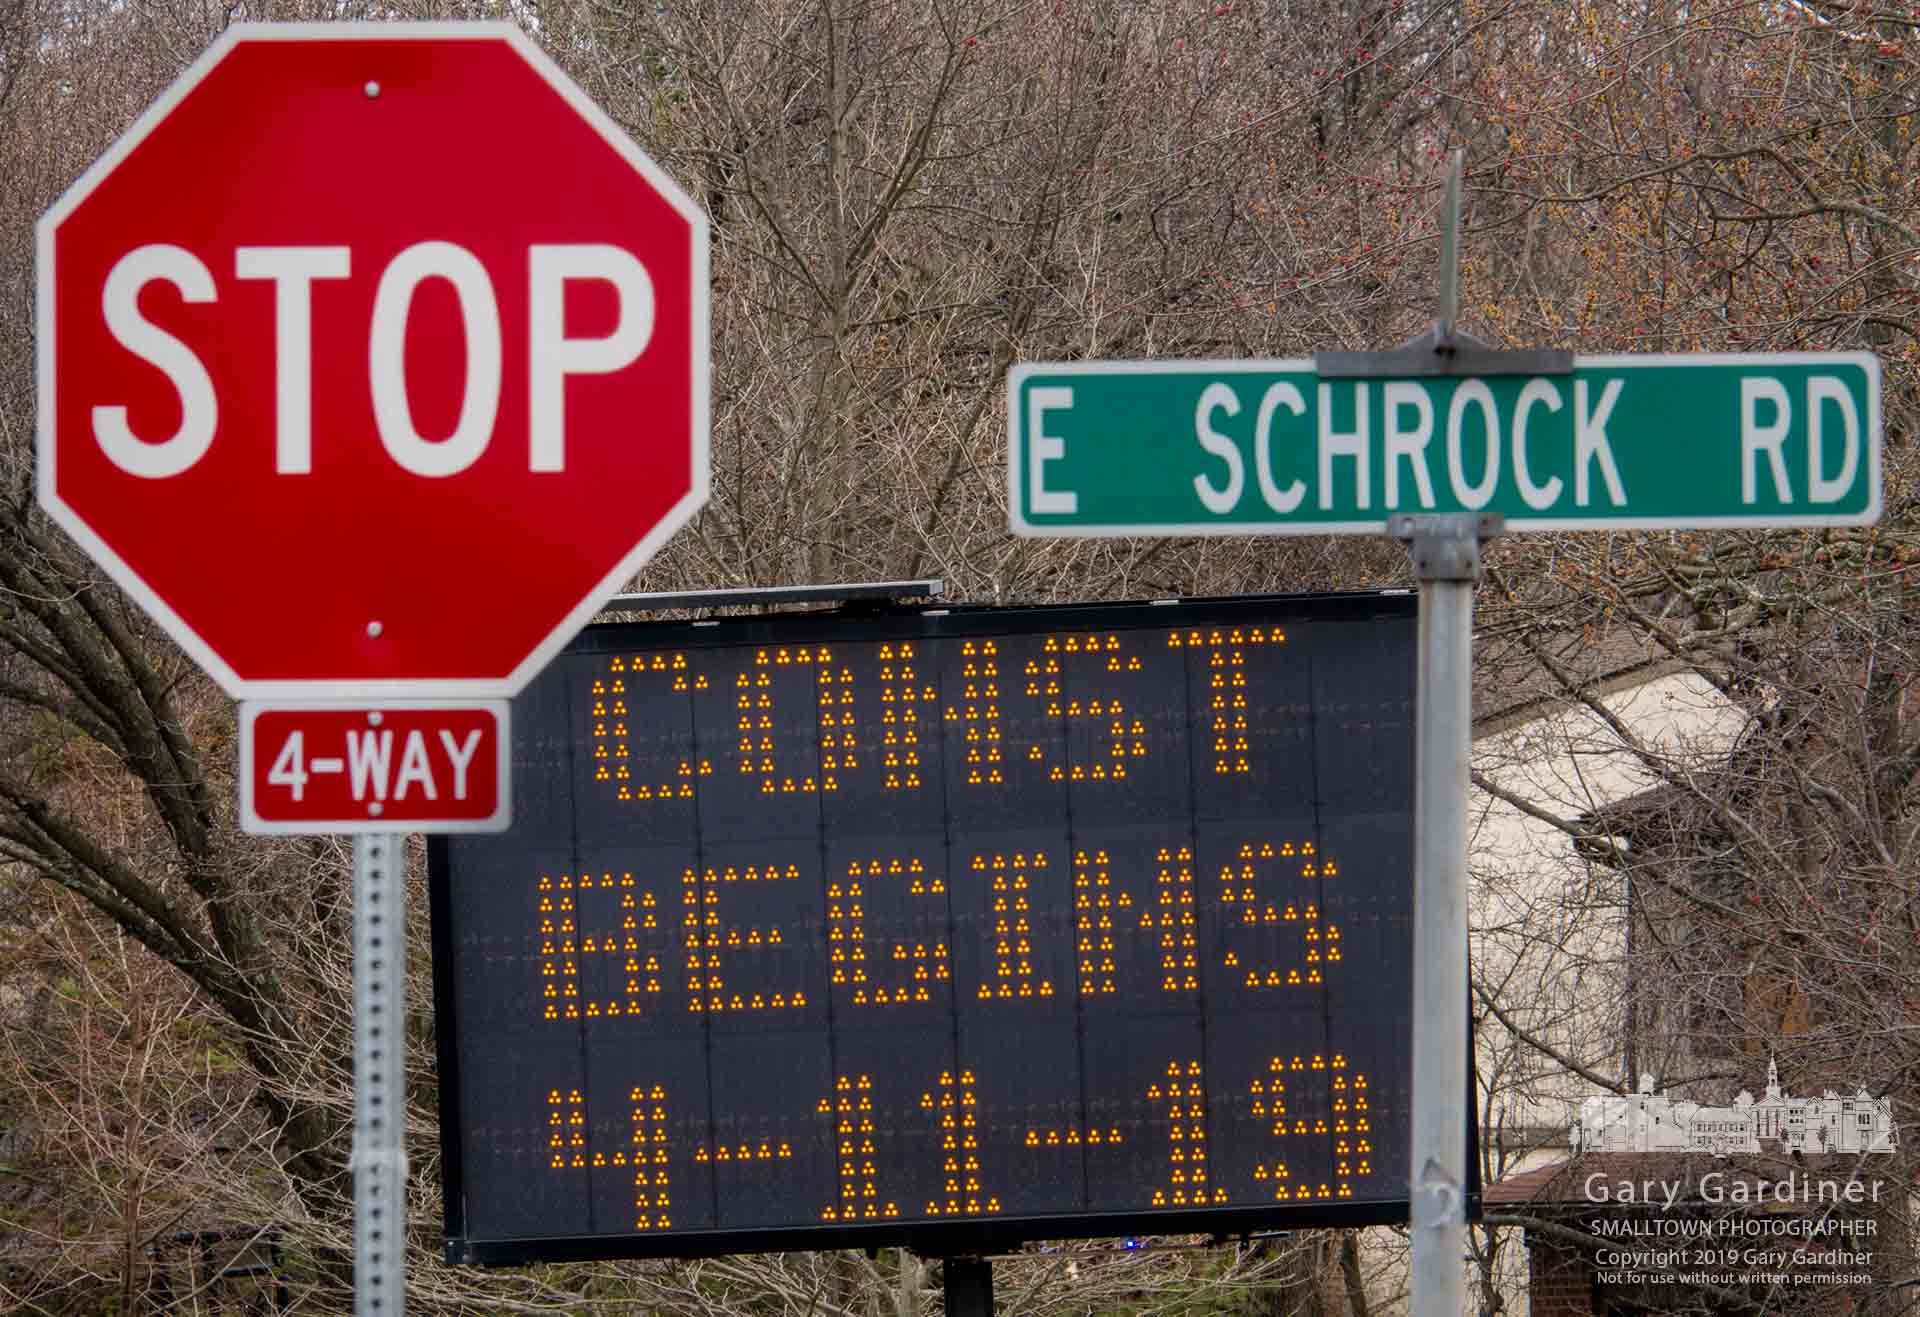 A digital sign at the corner of Schrock and Spring announces the date for construction to begin on Spring between Walnut and Schrock. MY Final Photo for April 4, 2019.